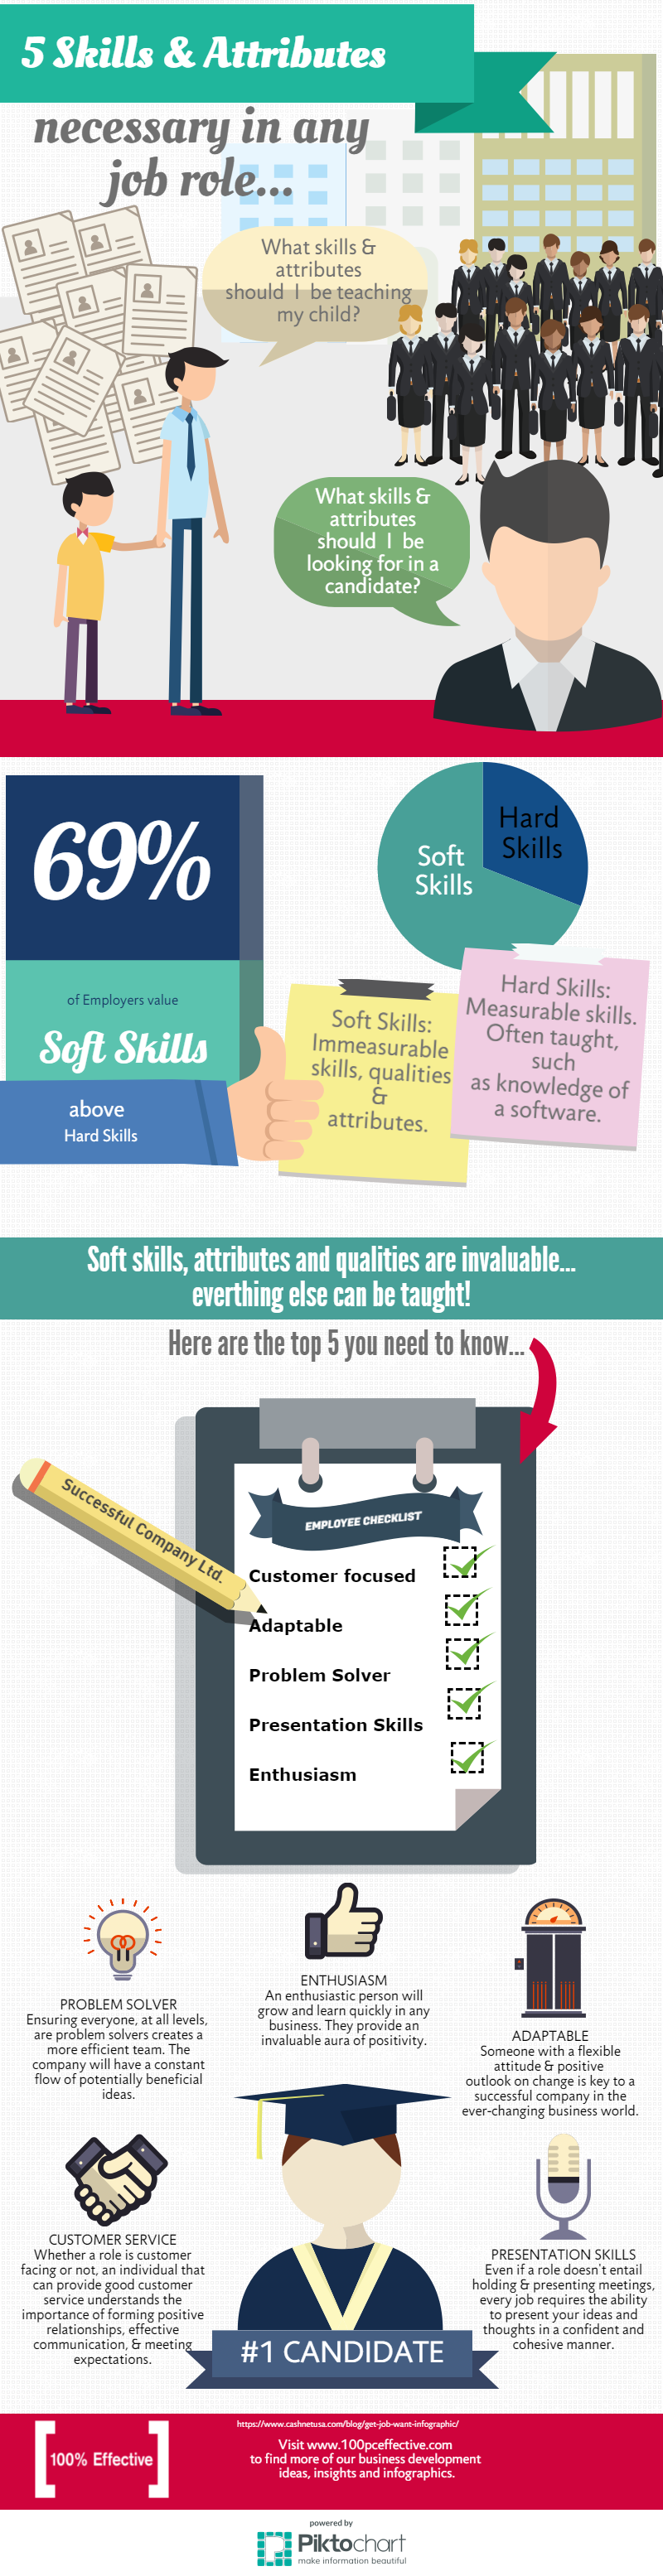 skills attributes necessary in any job role infographic 5 key skills